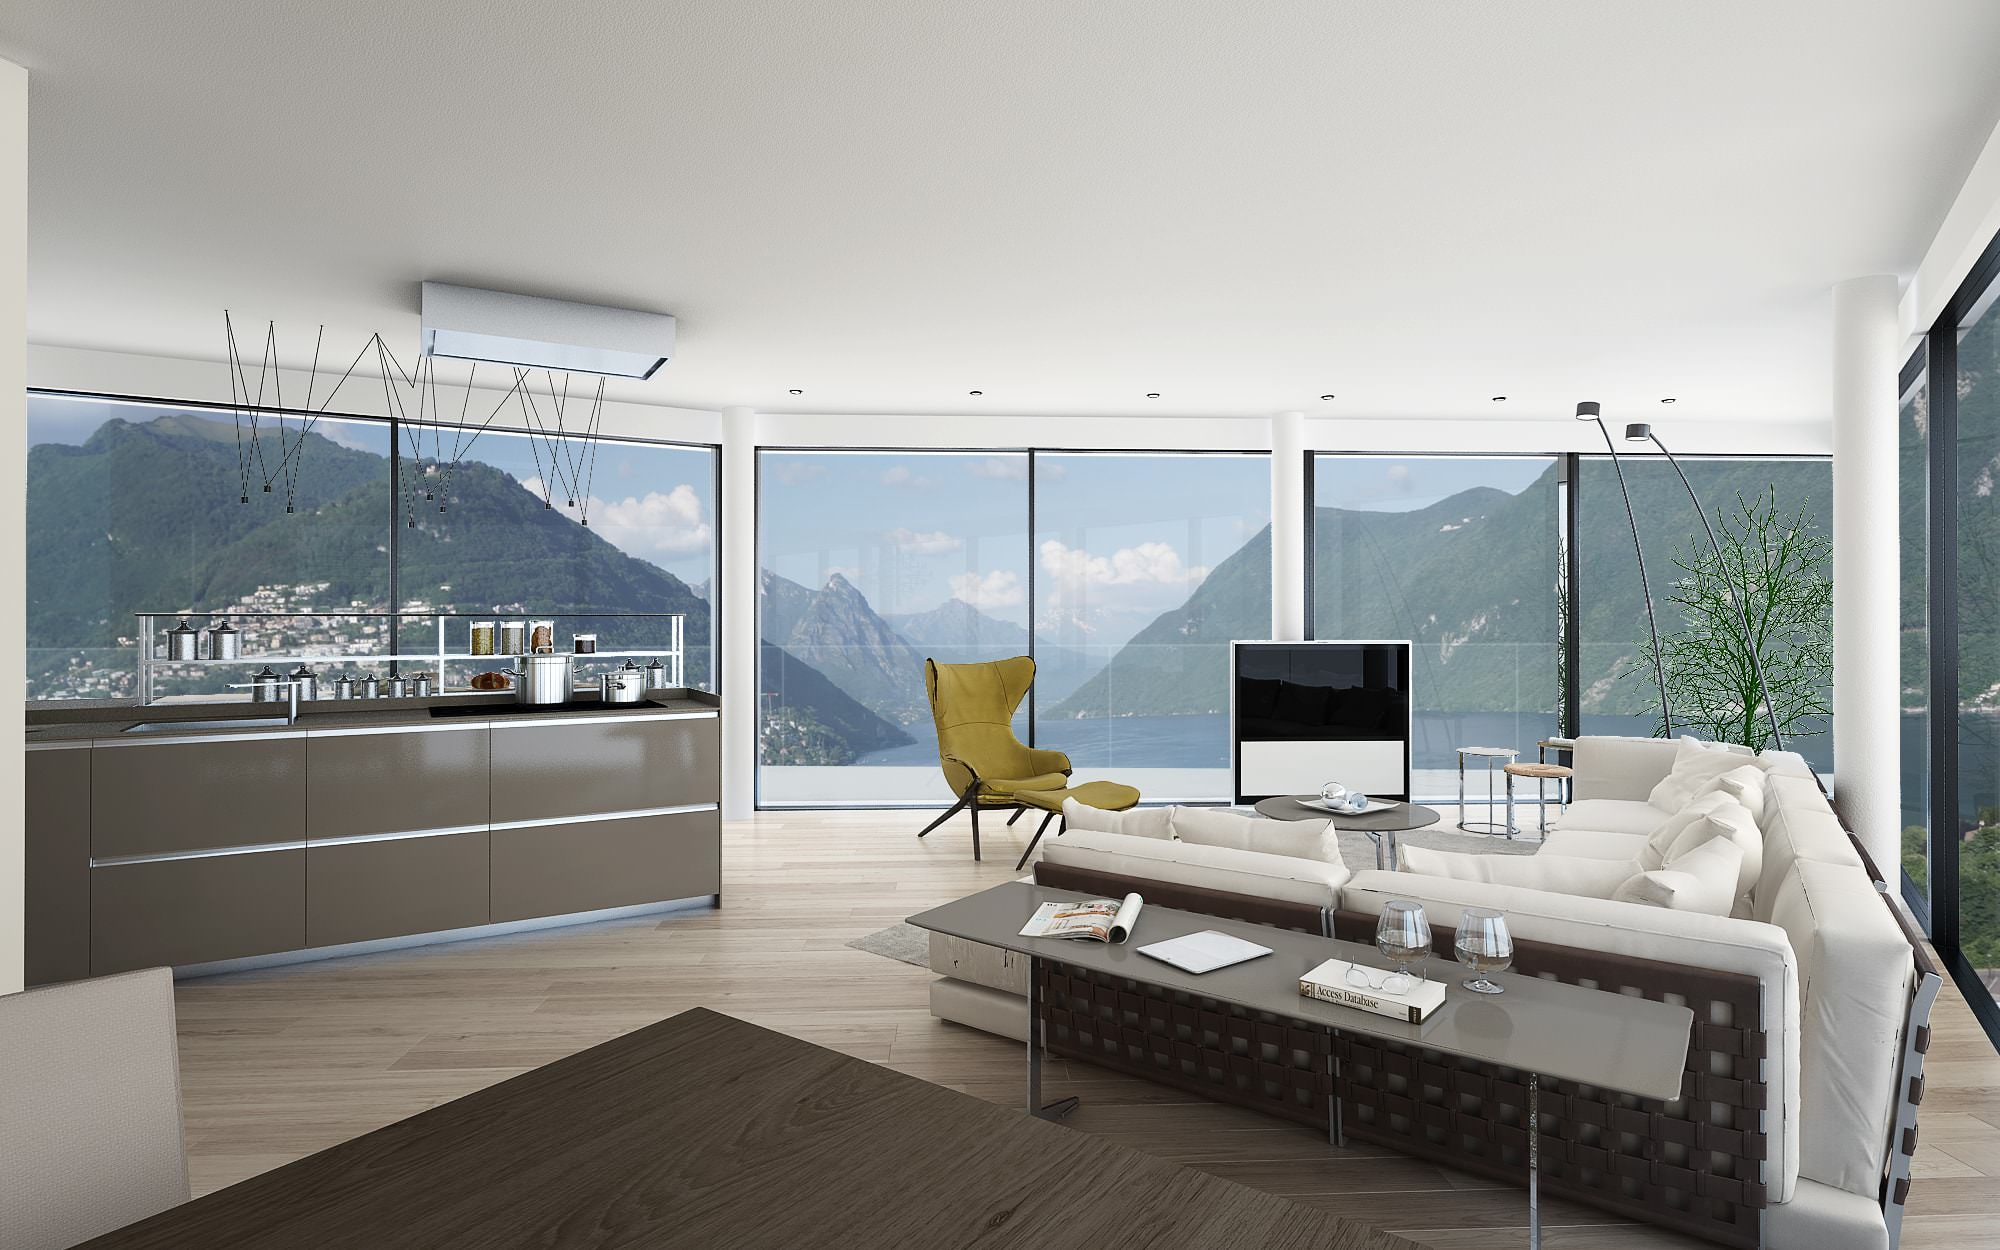 Landscape innovative penthouse Lugano canton Ticino Switzerland